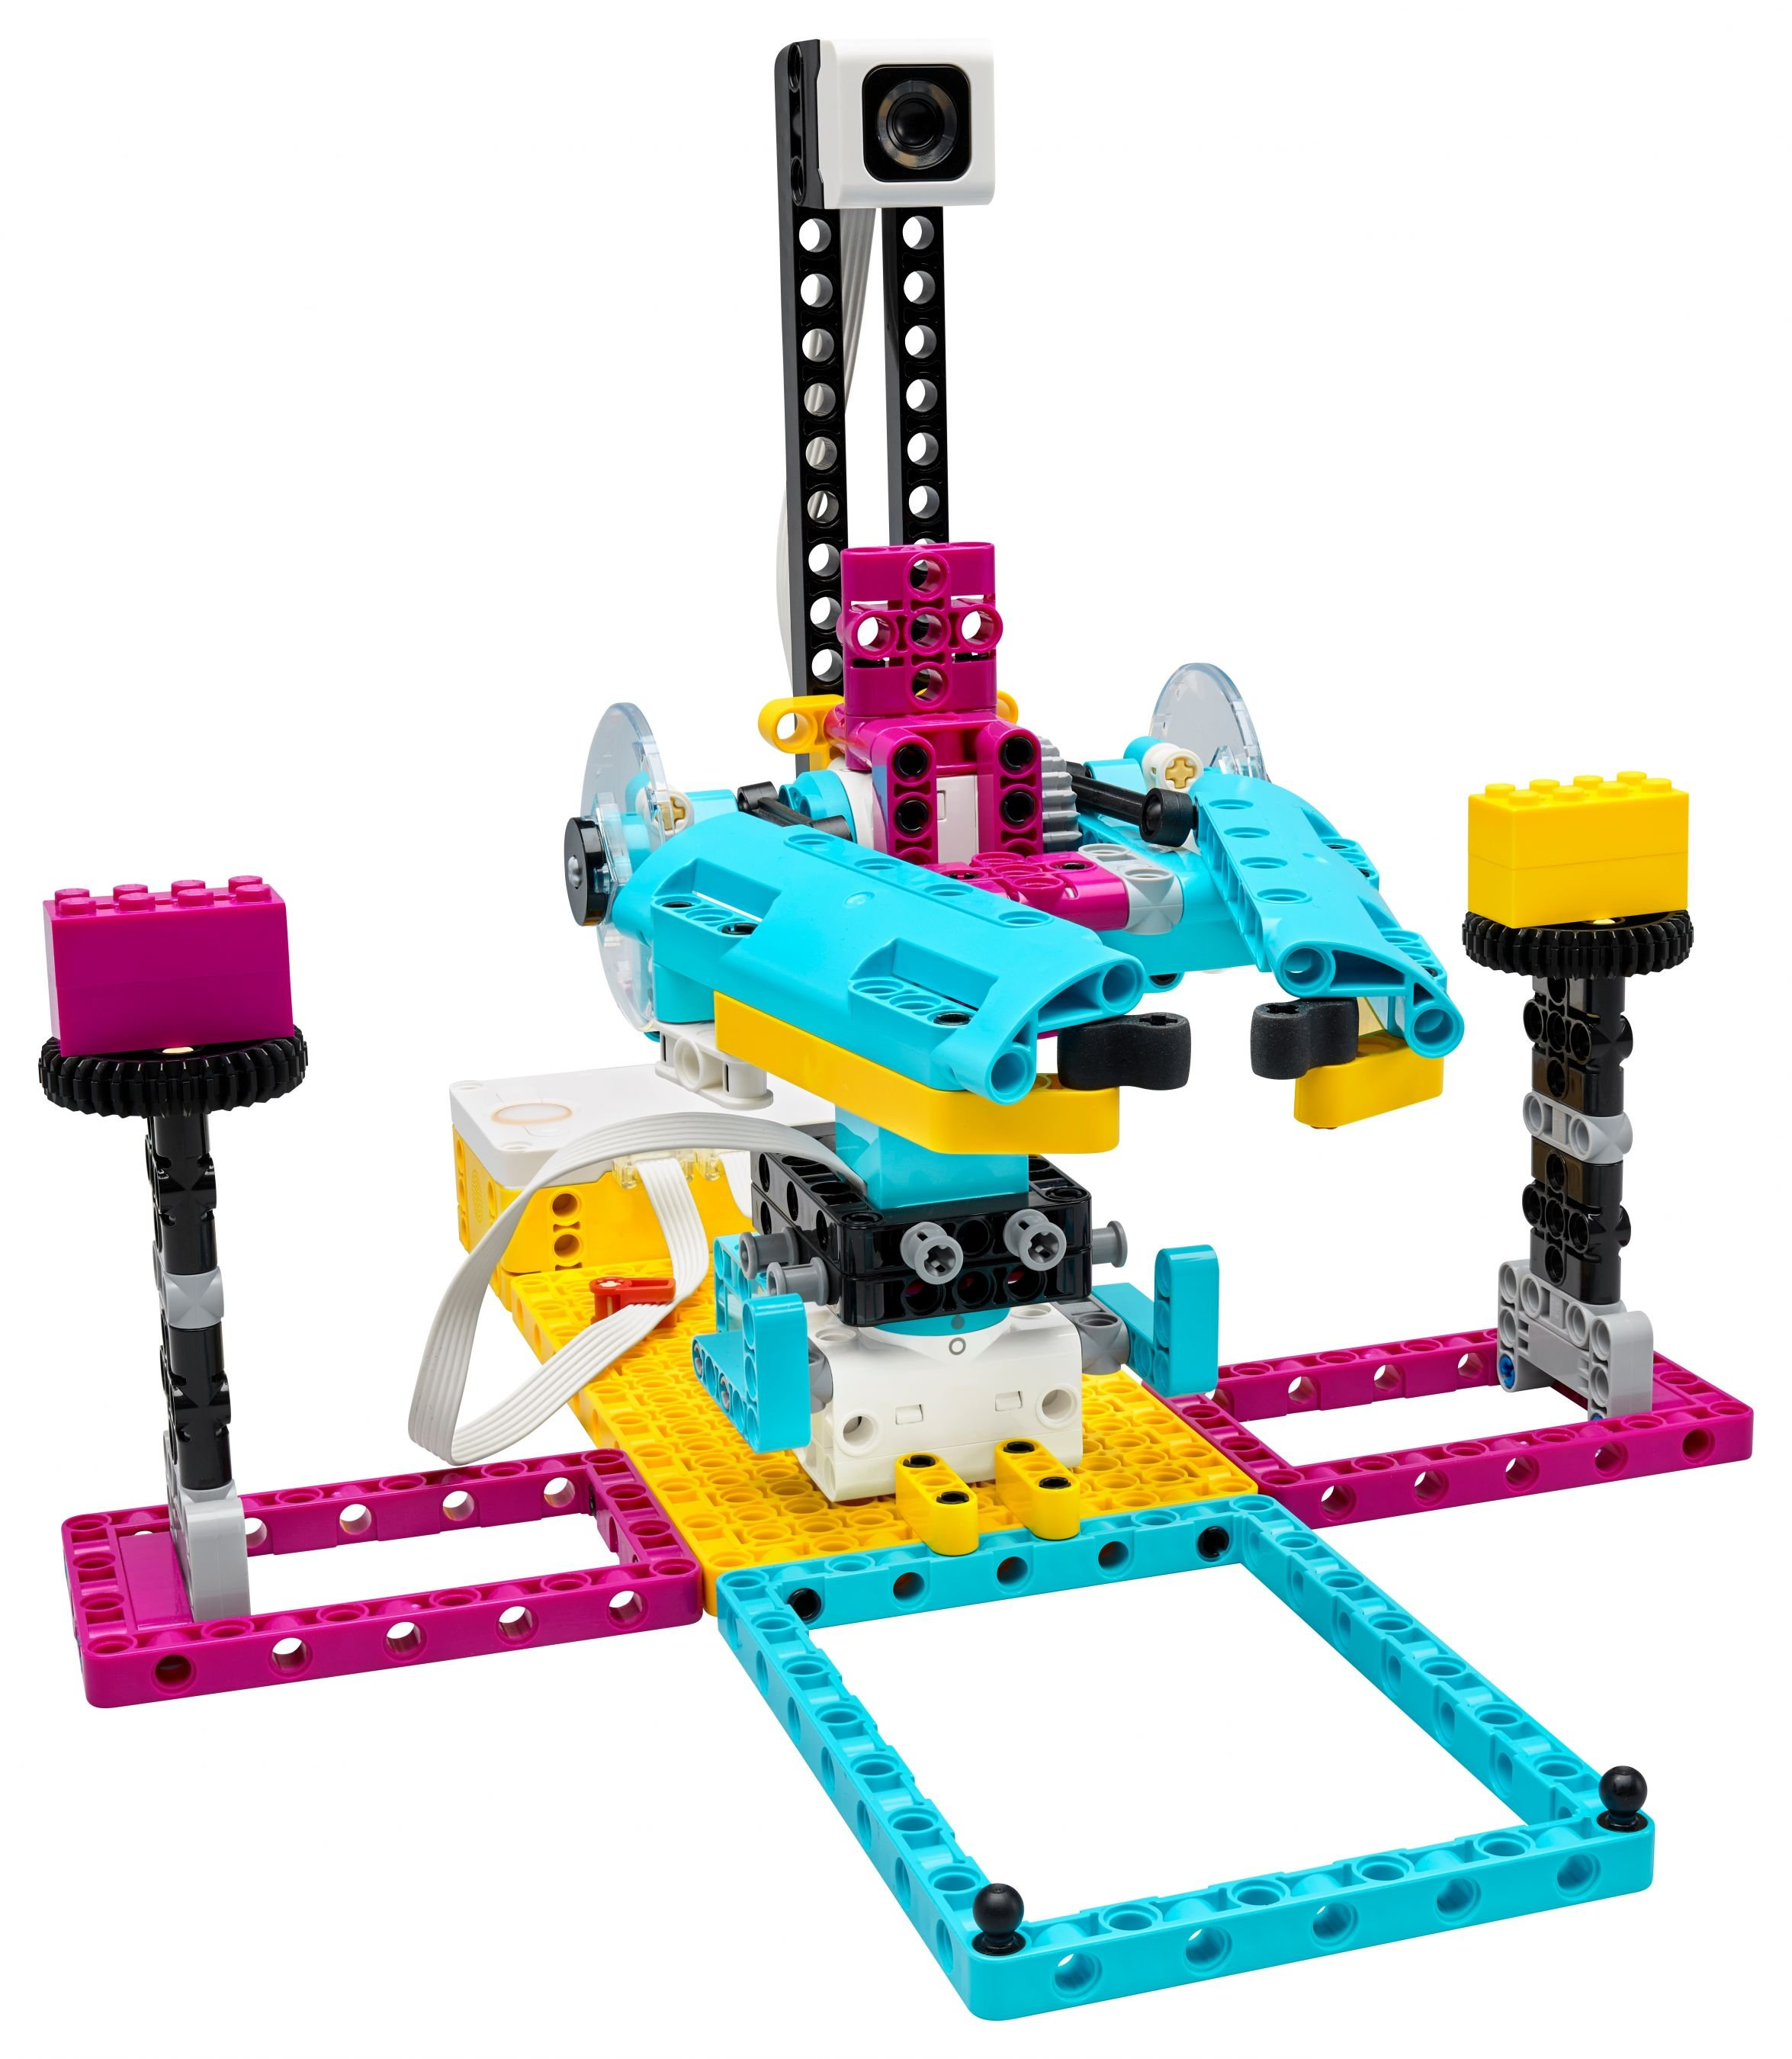 LEGO Education 45678 LEGO® Education SPIKE™ Prime-Set LEGO_45678_alt8.jpg